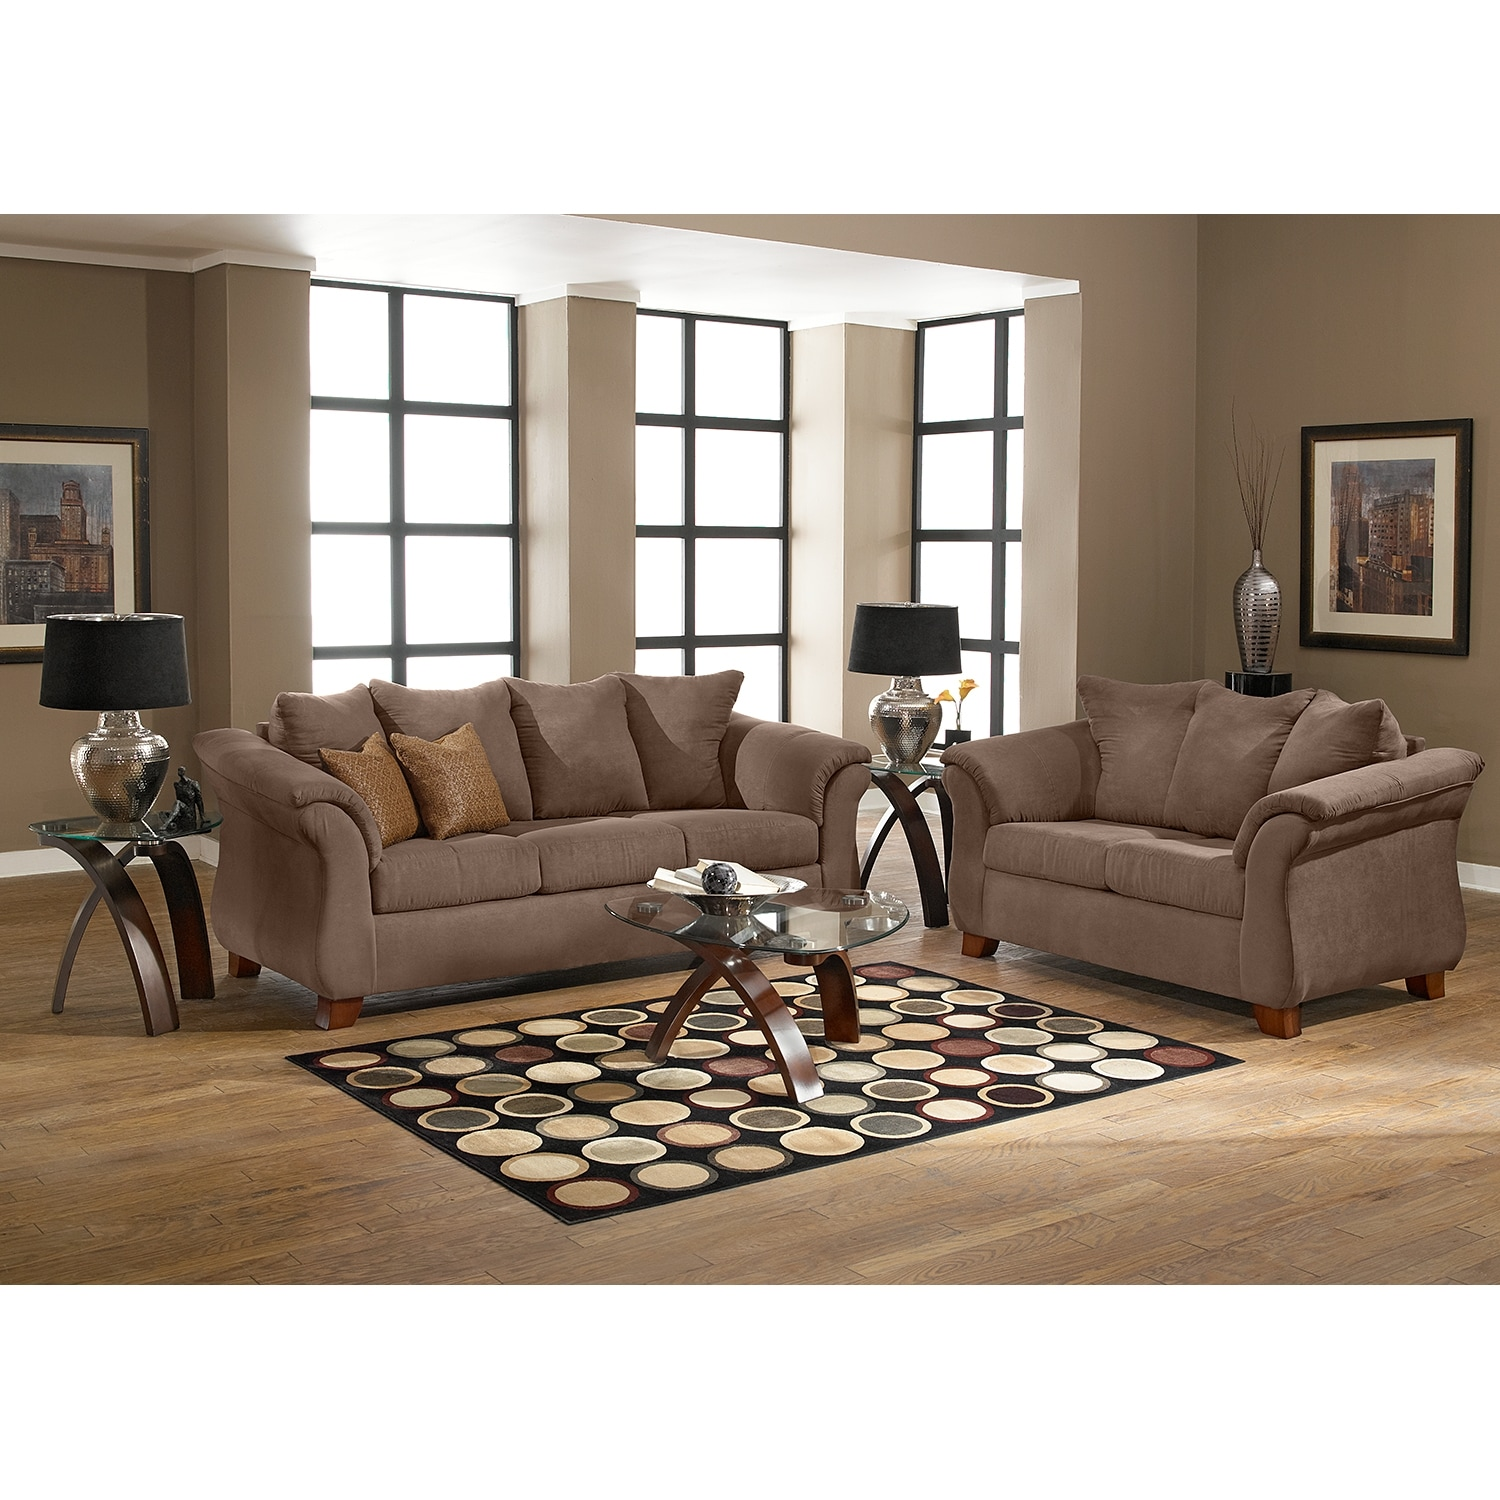 Taupe Color Living Room The Best Living Room Ideas 2017